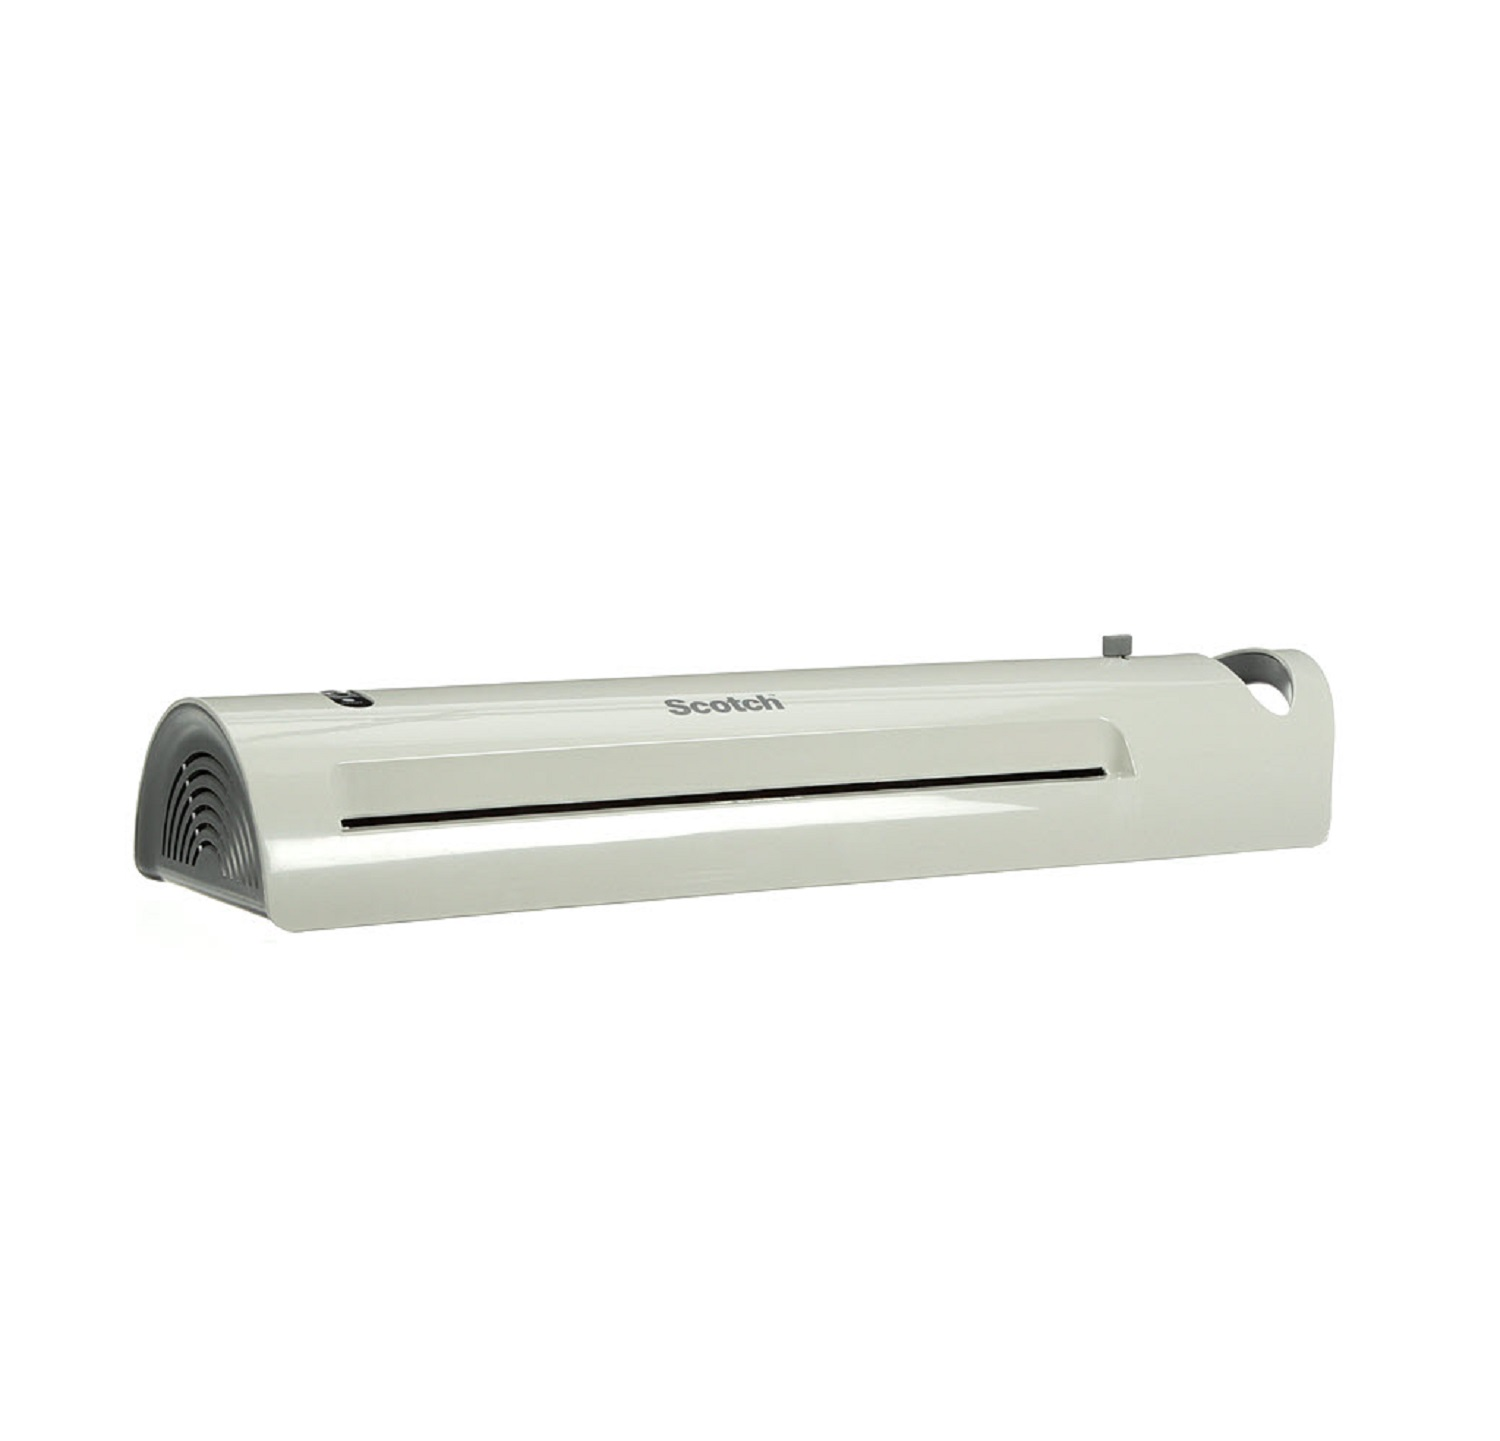 Fellowes Spectra 95 Home Office Craft Laminator with 200 Letter-Size 3mil ImageLast Jam Free Laminating Pouches